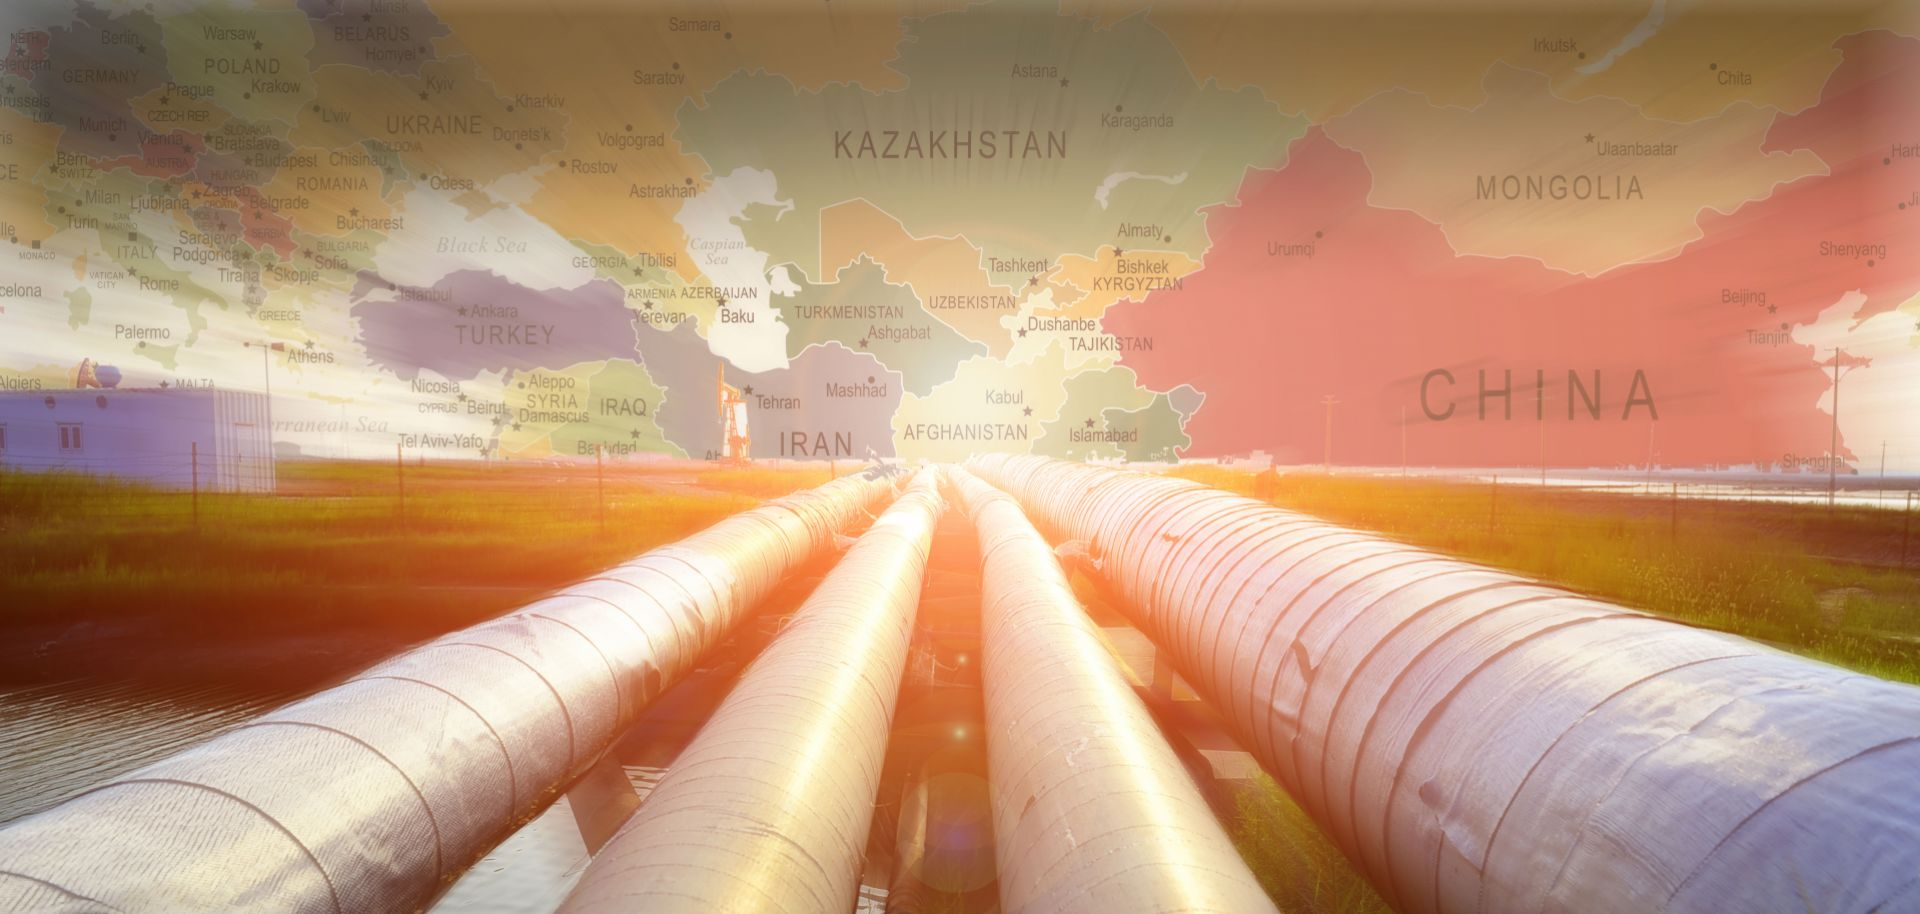 China's planned initiatives in Central Asia range from electricity infrastructure to industrial zones. But railways and pipelines form the backbone of its connectivity campaign in the region.